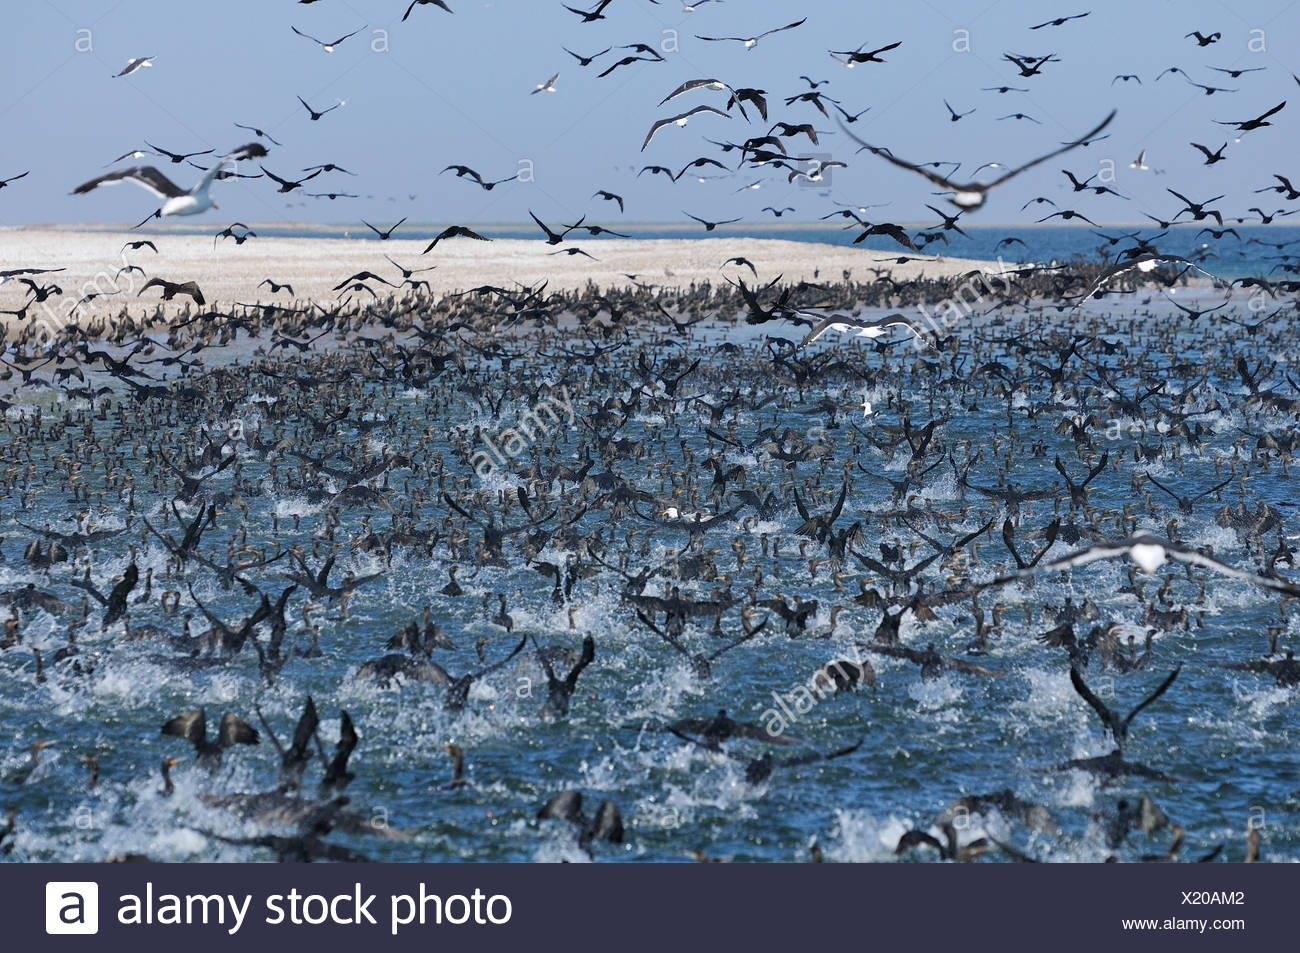 Africa, Namibia, Walvis Bay, Cormorants, Colony, birds, swarm, - Stock Image